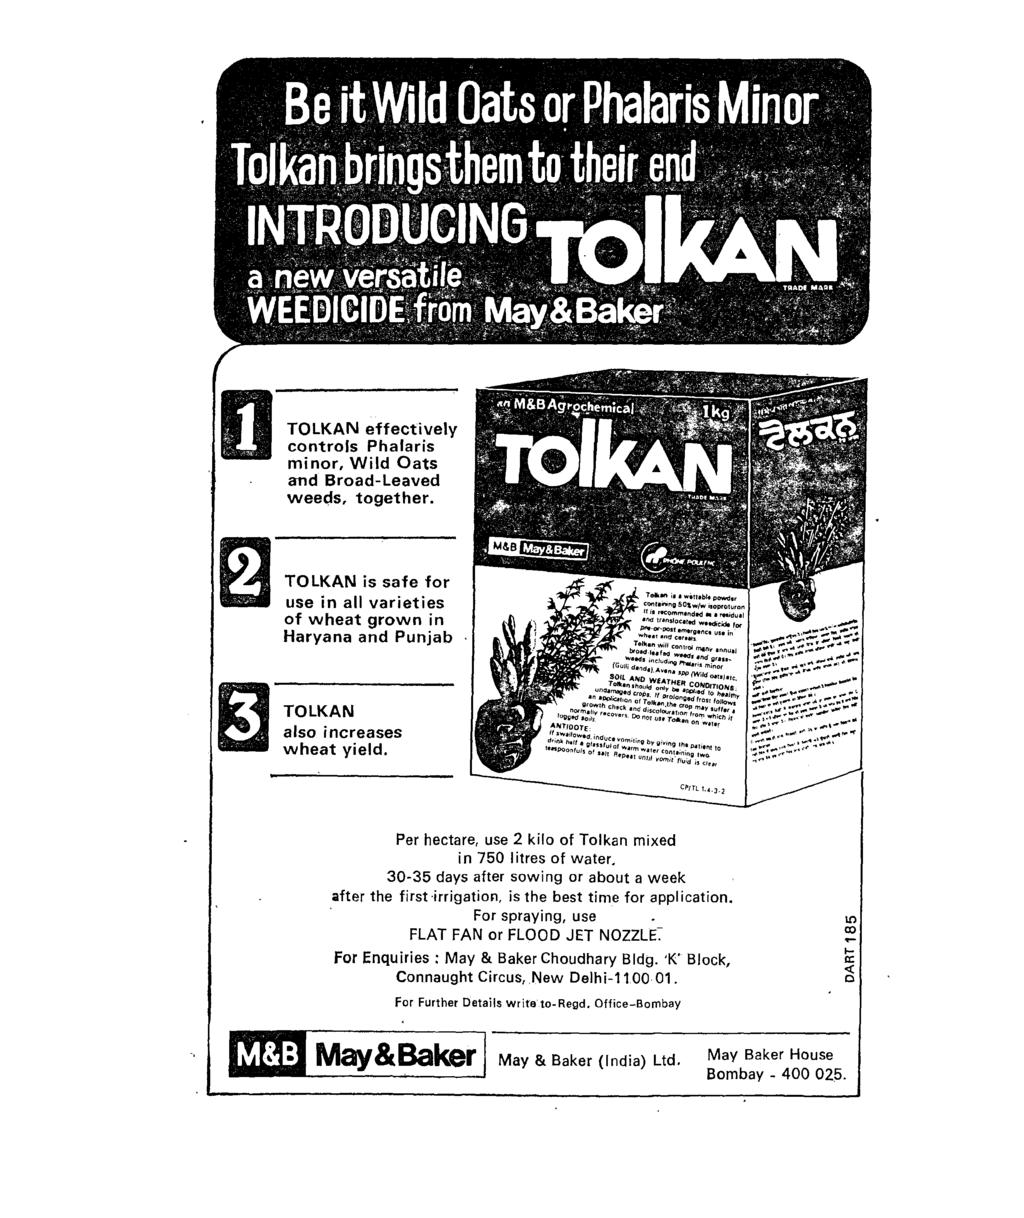 D TOLKAN effectively controls Phalaris minor, Wild Oats and Broad-Leaved weeds, together.